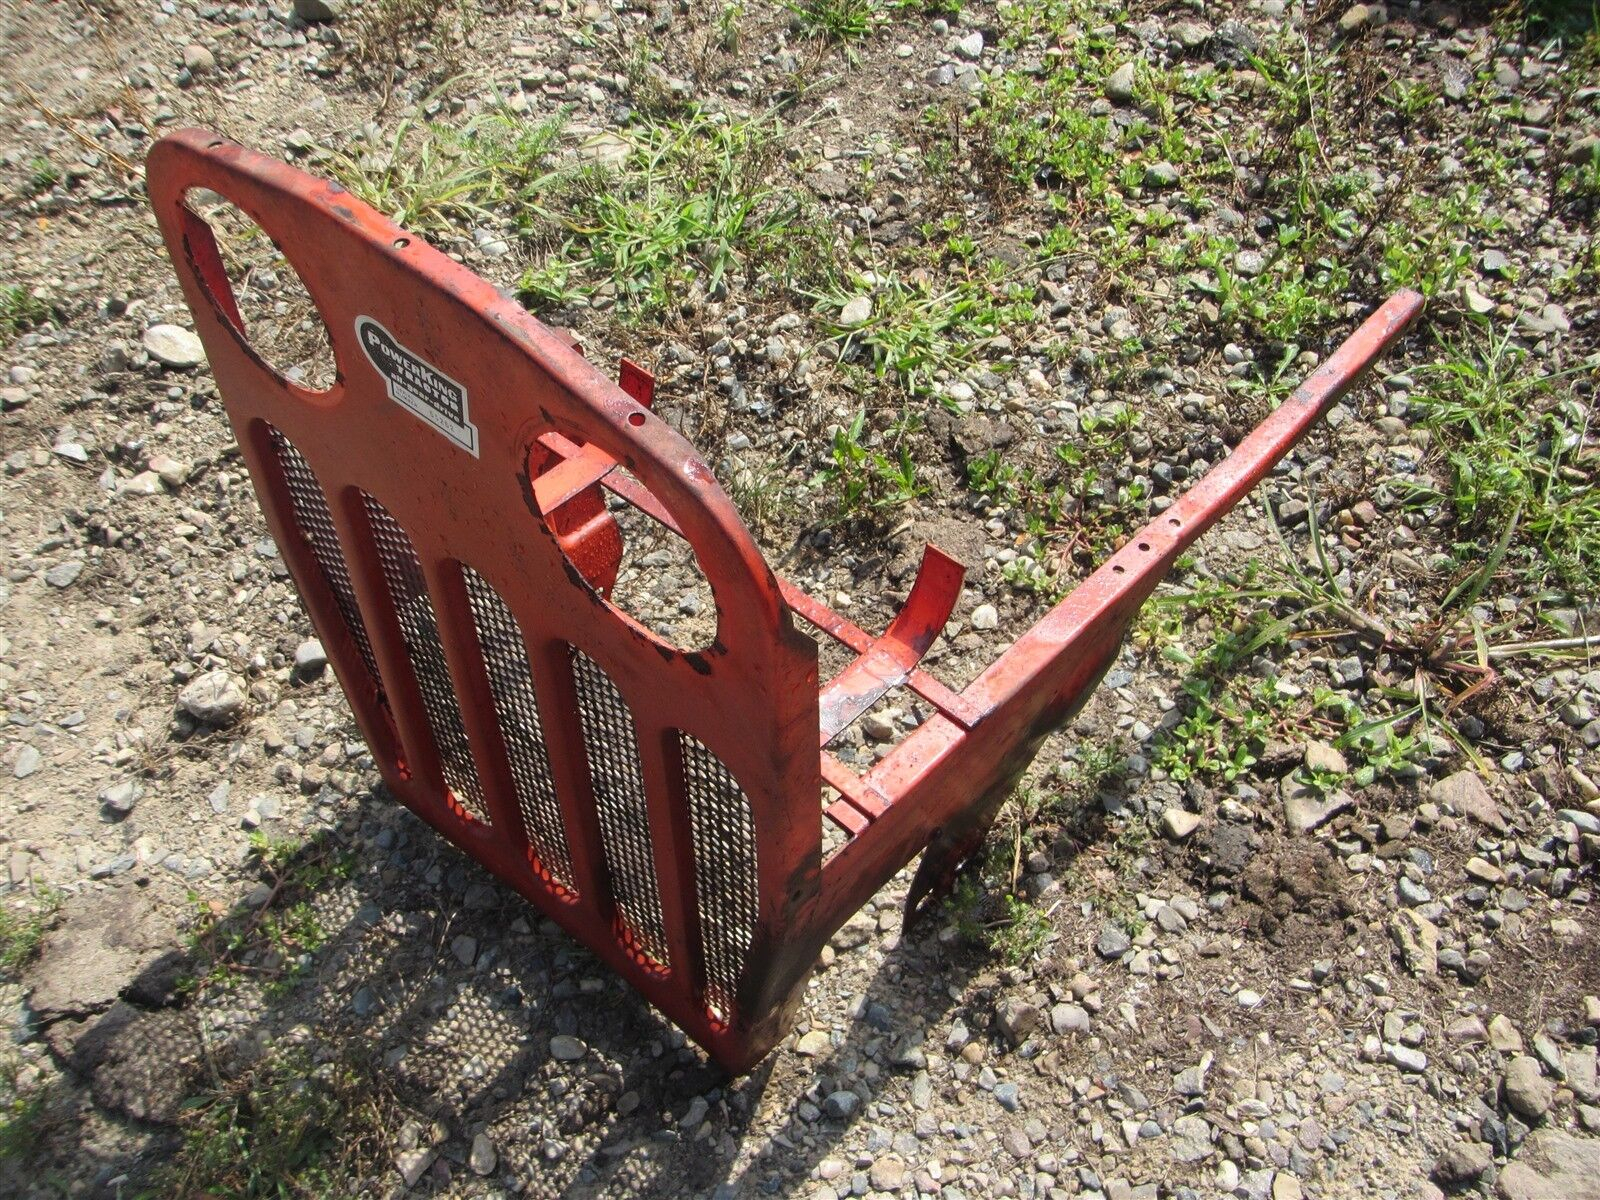 Economy power king tractor grille assembly ebay jpg 1600x1200 Economy power  king 2418